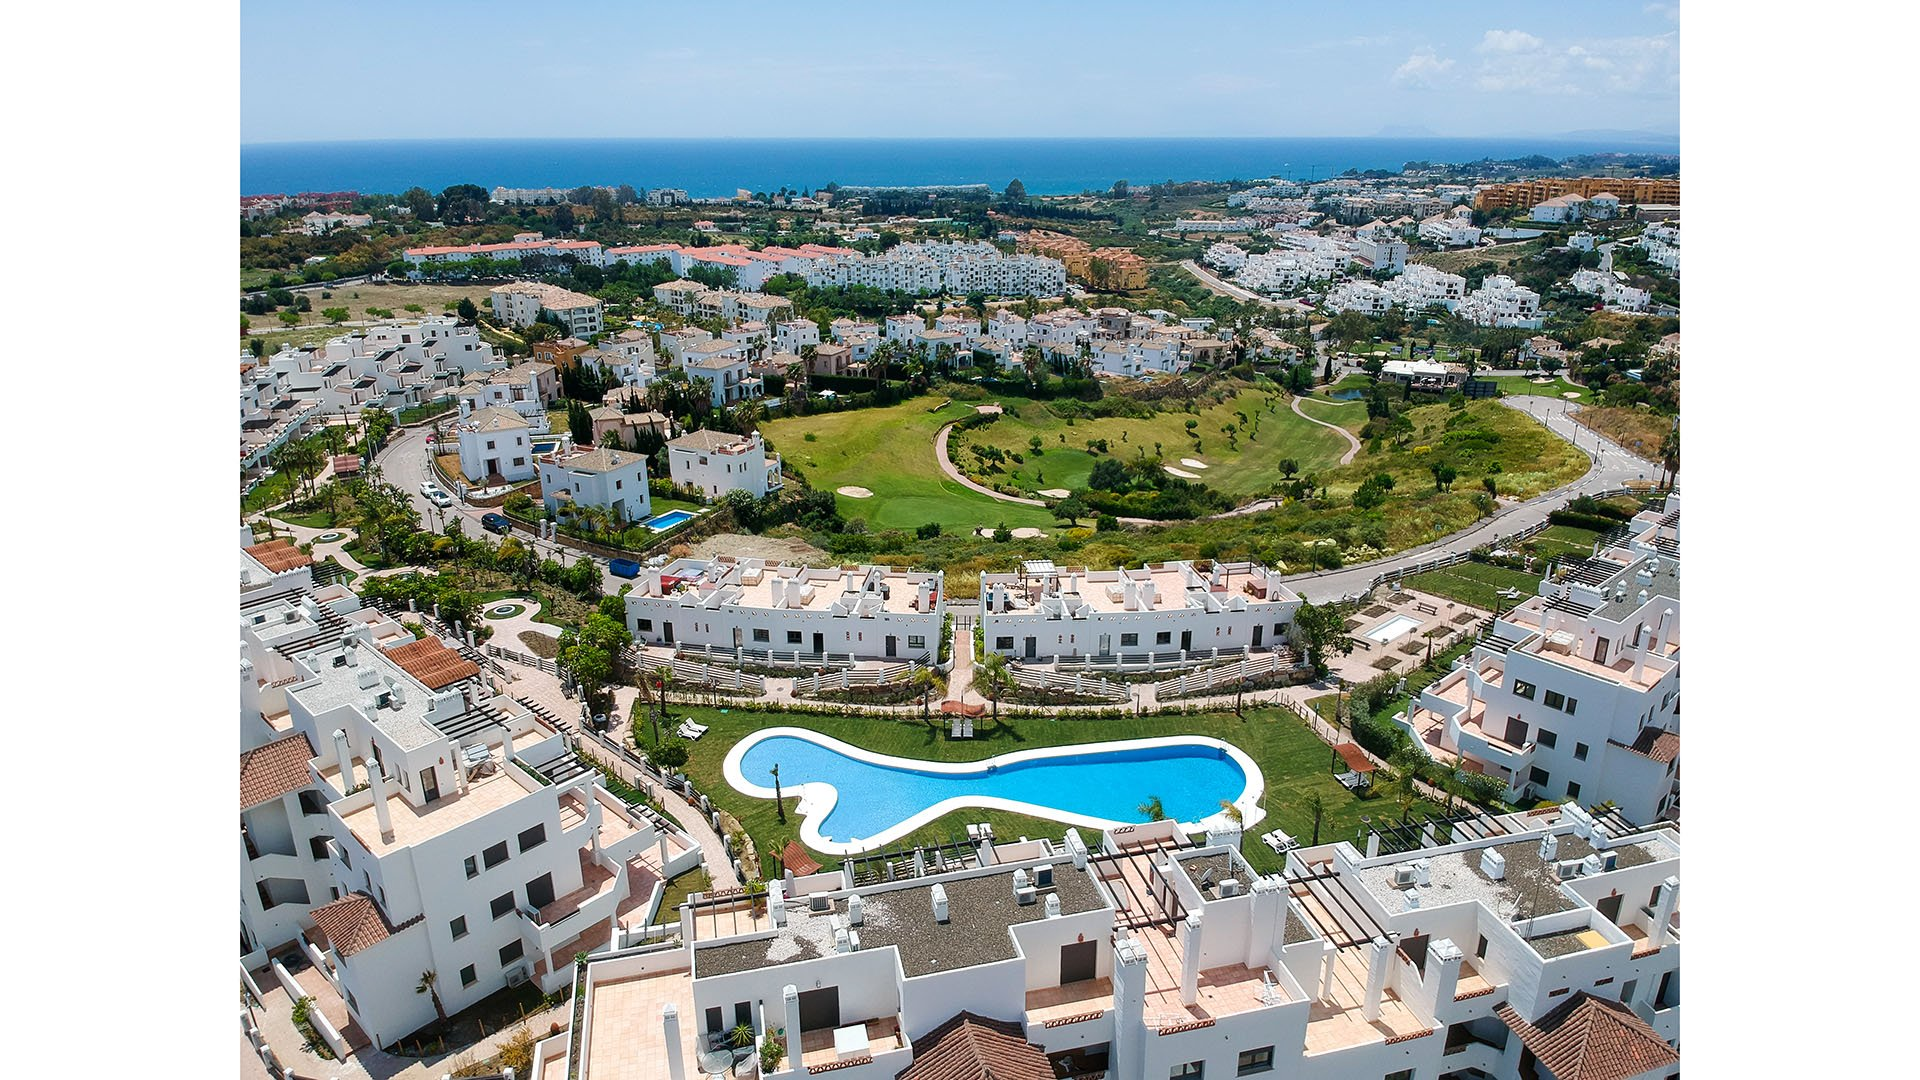 Sunset Golf Estepona: Apartments is a Mediterranean residential area close to Marbella